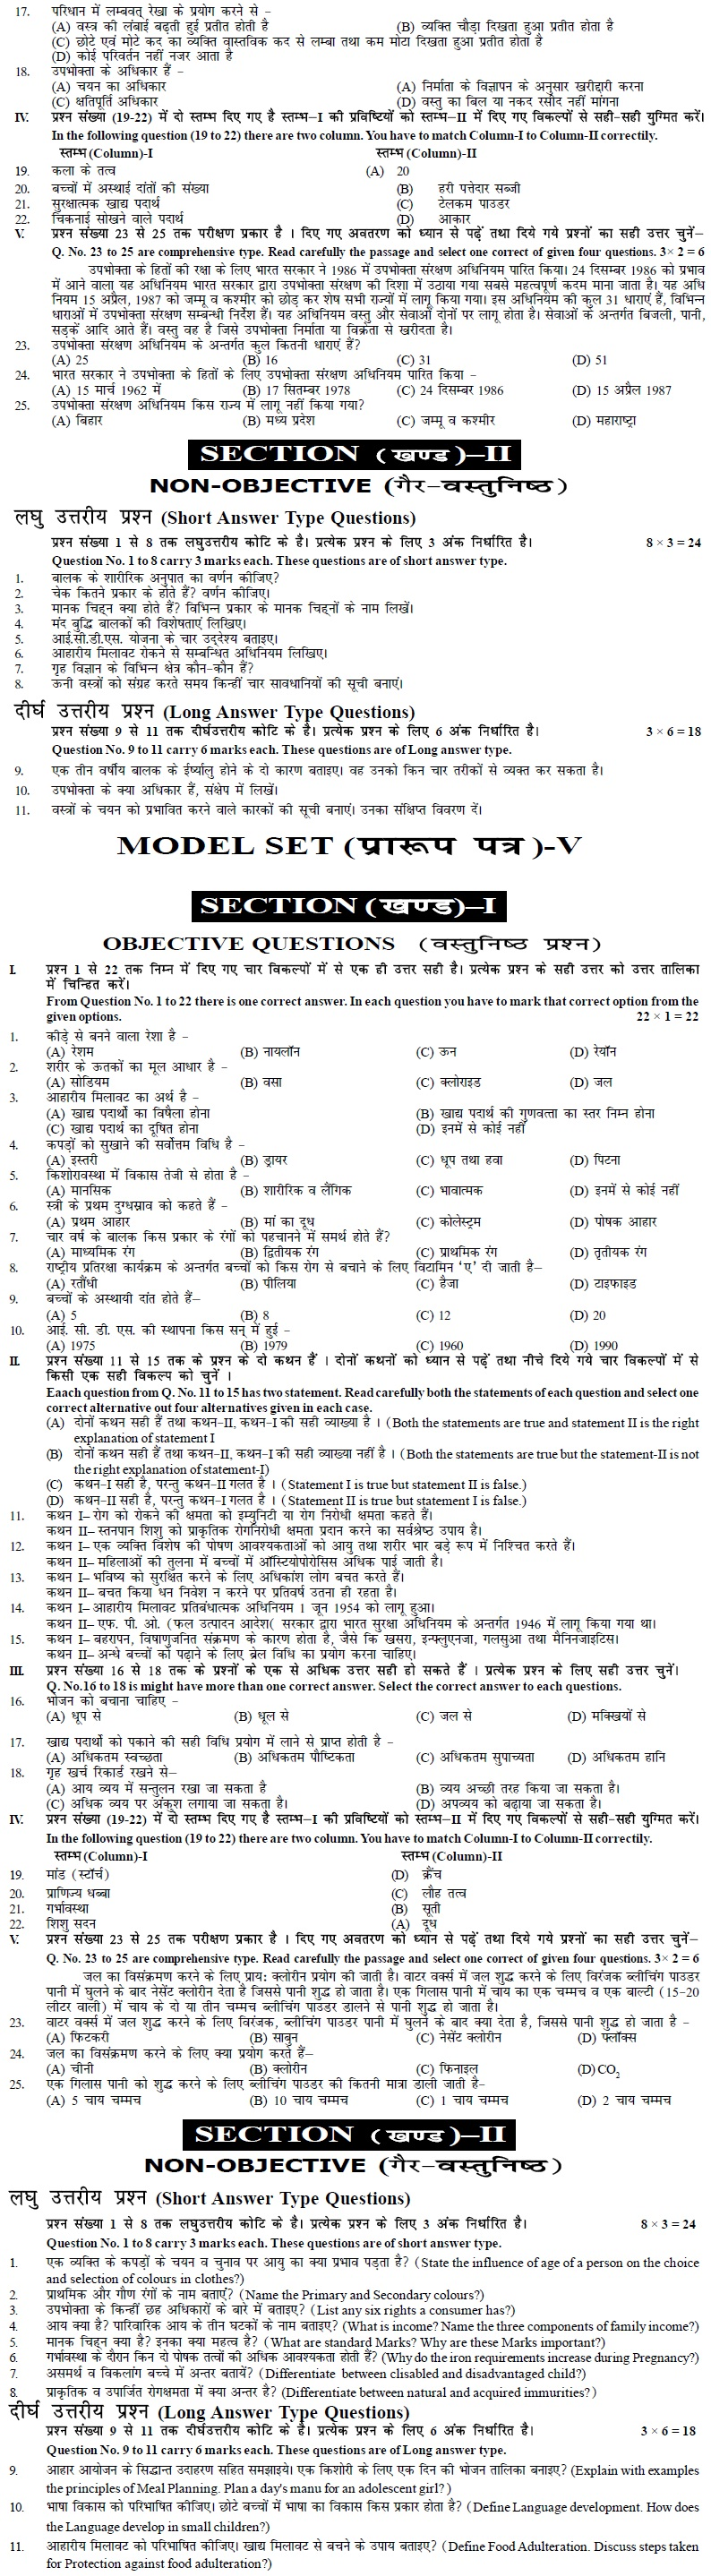 Bihar Board Class XII Arts Model Question Papers - Home Science